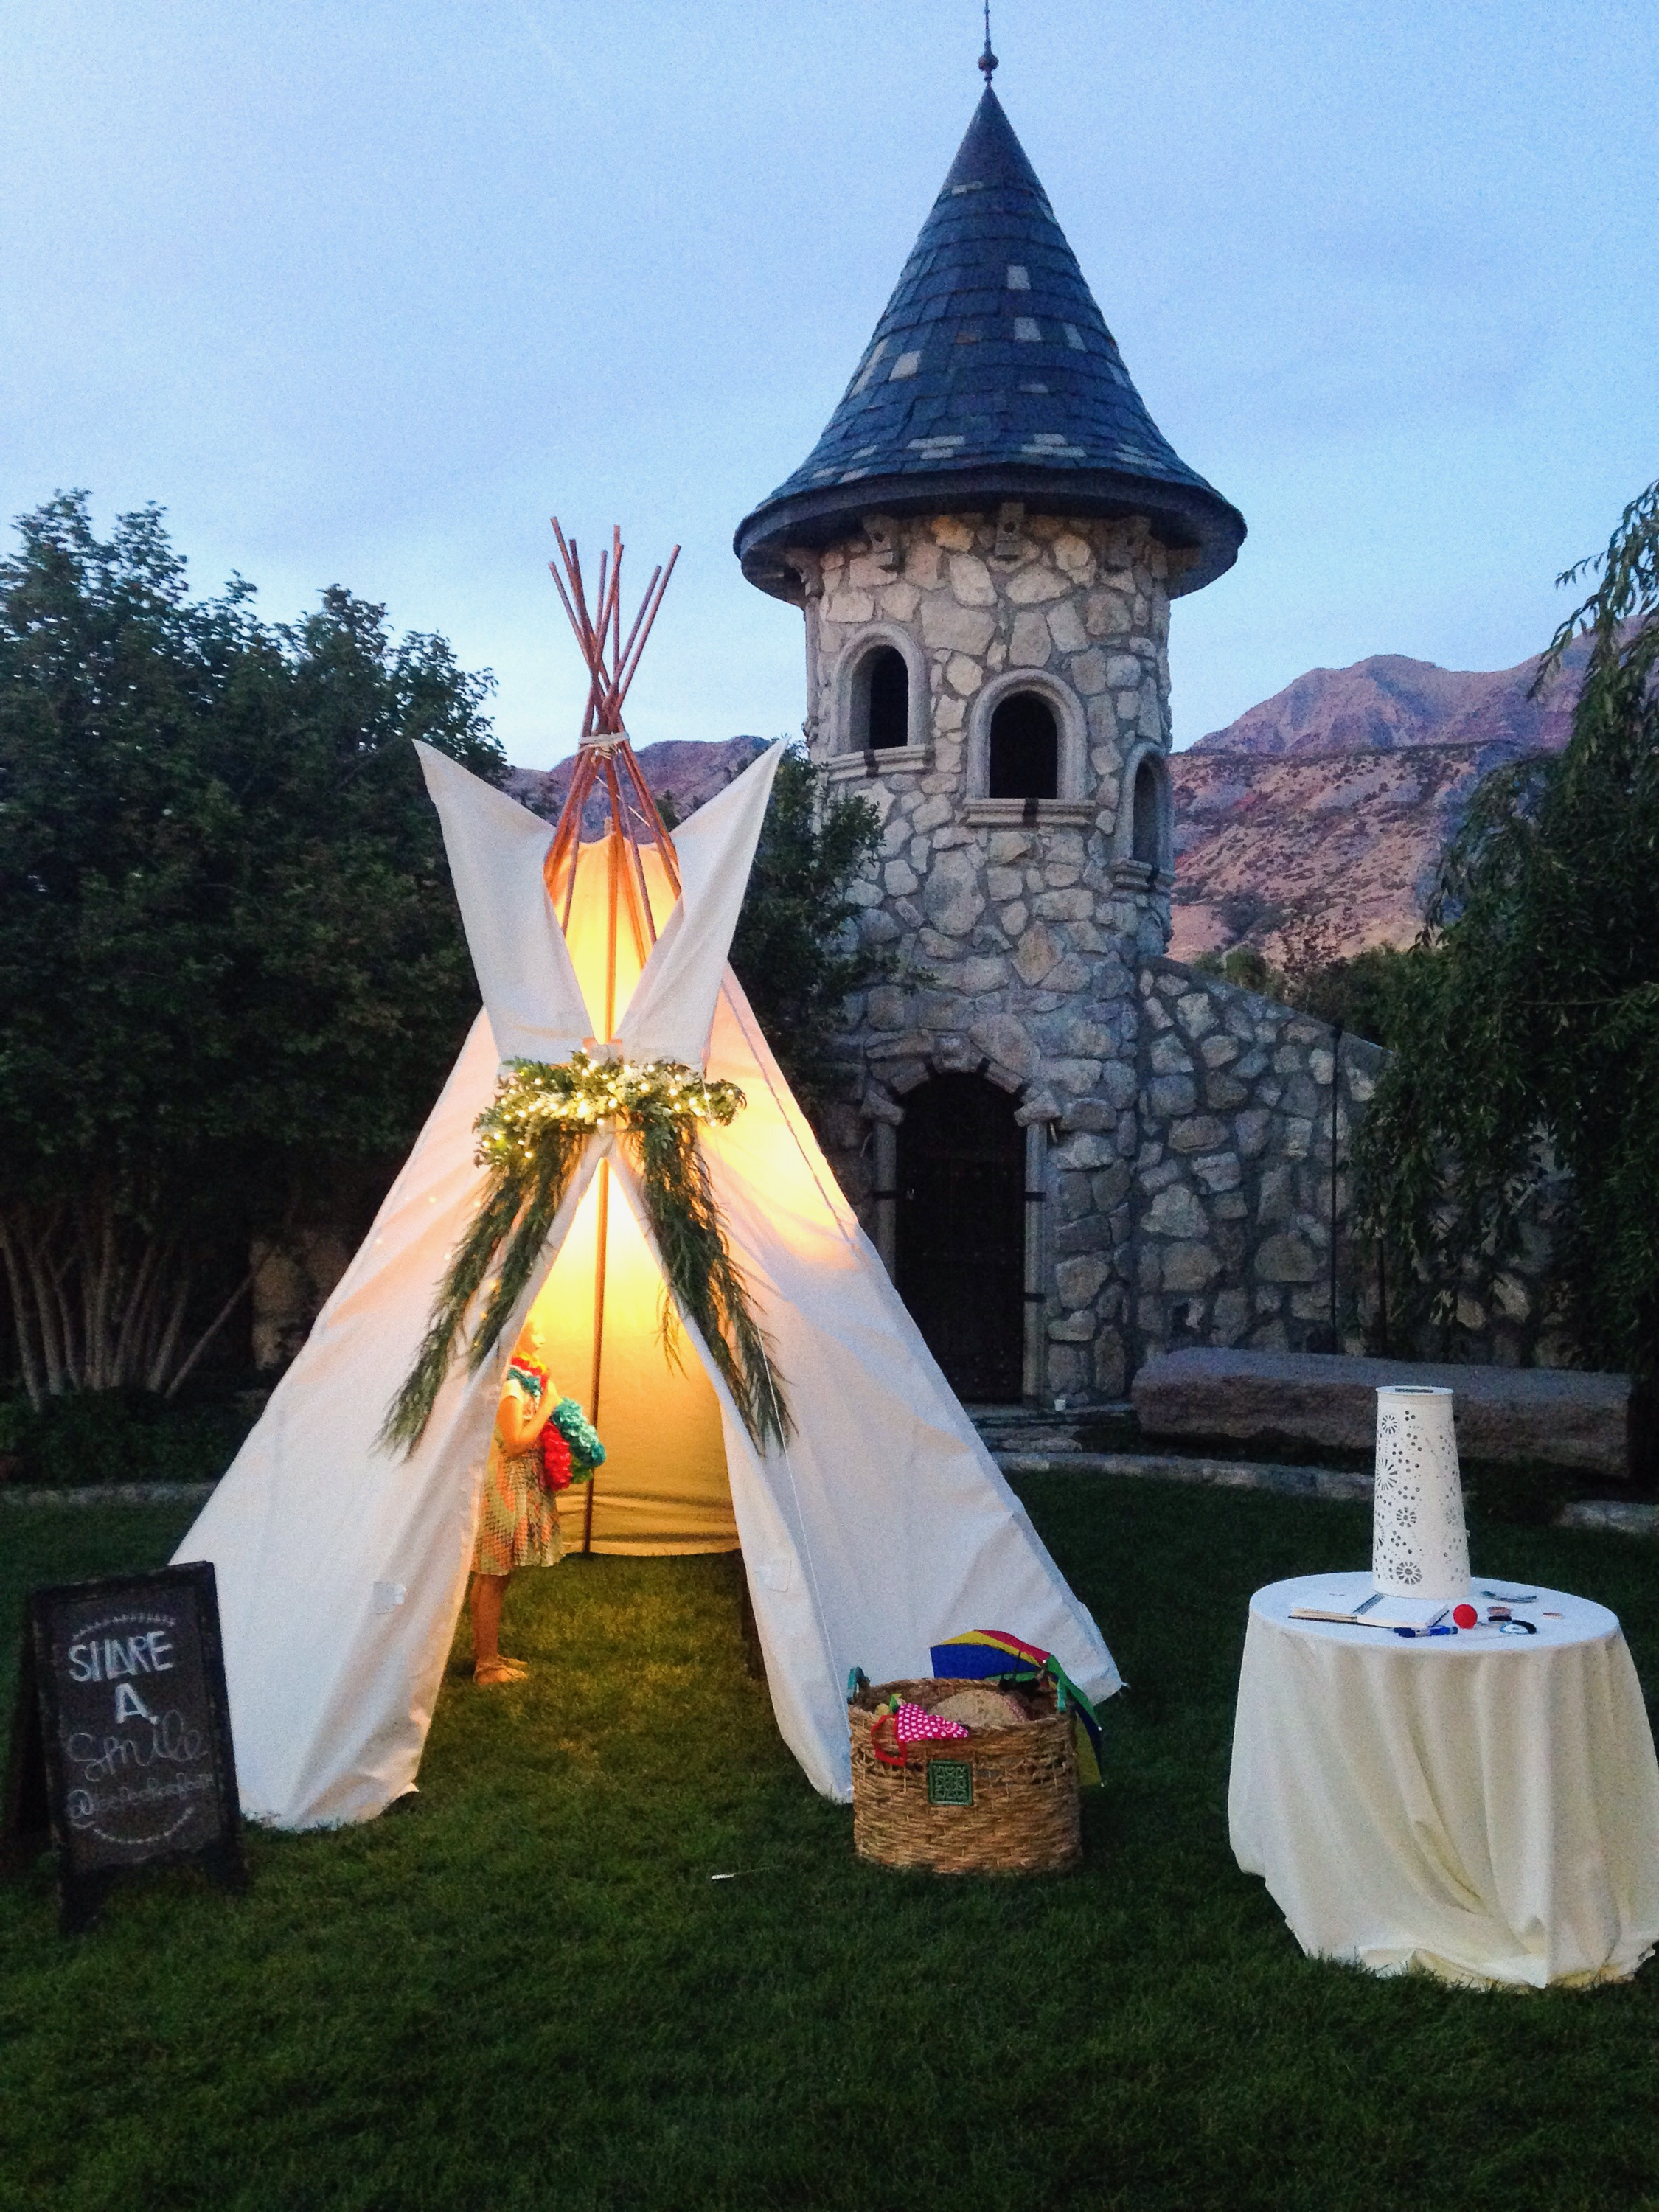 Book TeePee Photo Booth at your next birthday party, wedding reception, school dance, corporate event...Based in Utah but travel ready! - Call or text us today 801.473.3062 or shoot us an email at teepeephotobooth@gmail.com